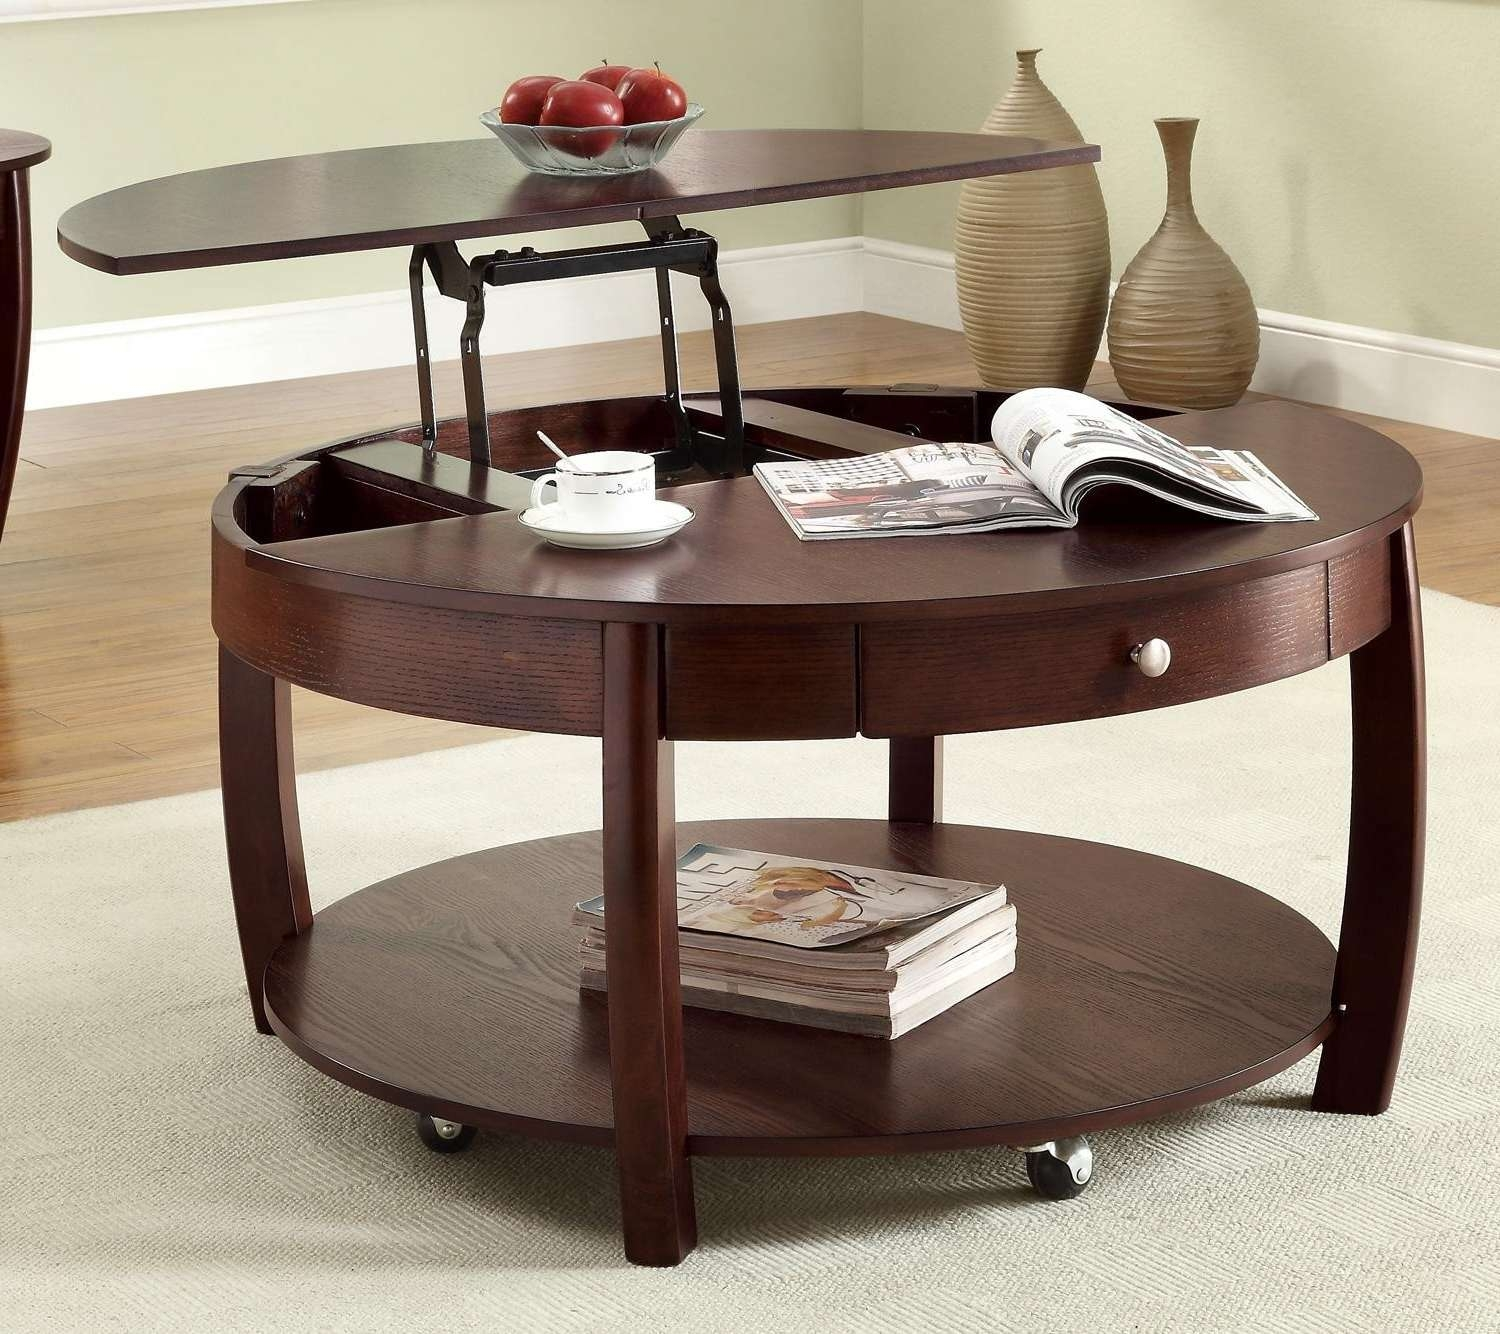 Coffee Tables : Lift Up Coffee Table Mechanism Furniture Within Famous Coffee Tables With Raisable Top (View 17 of 20)